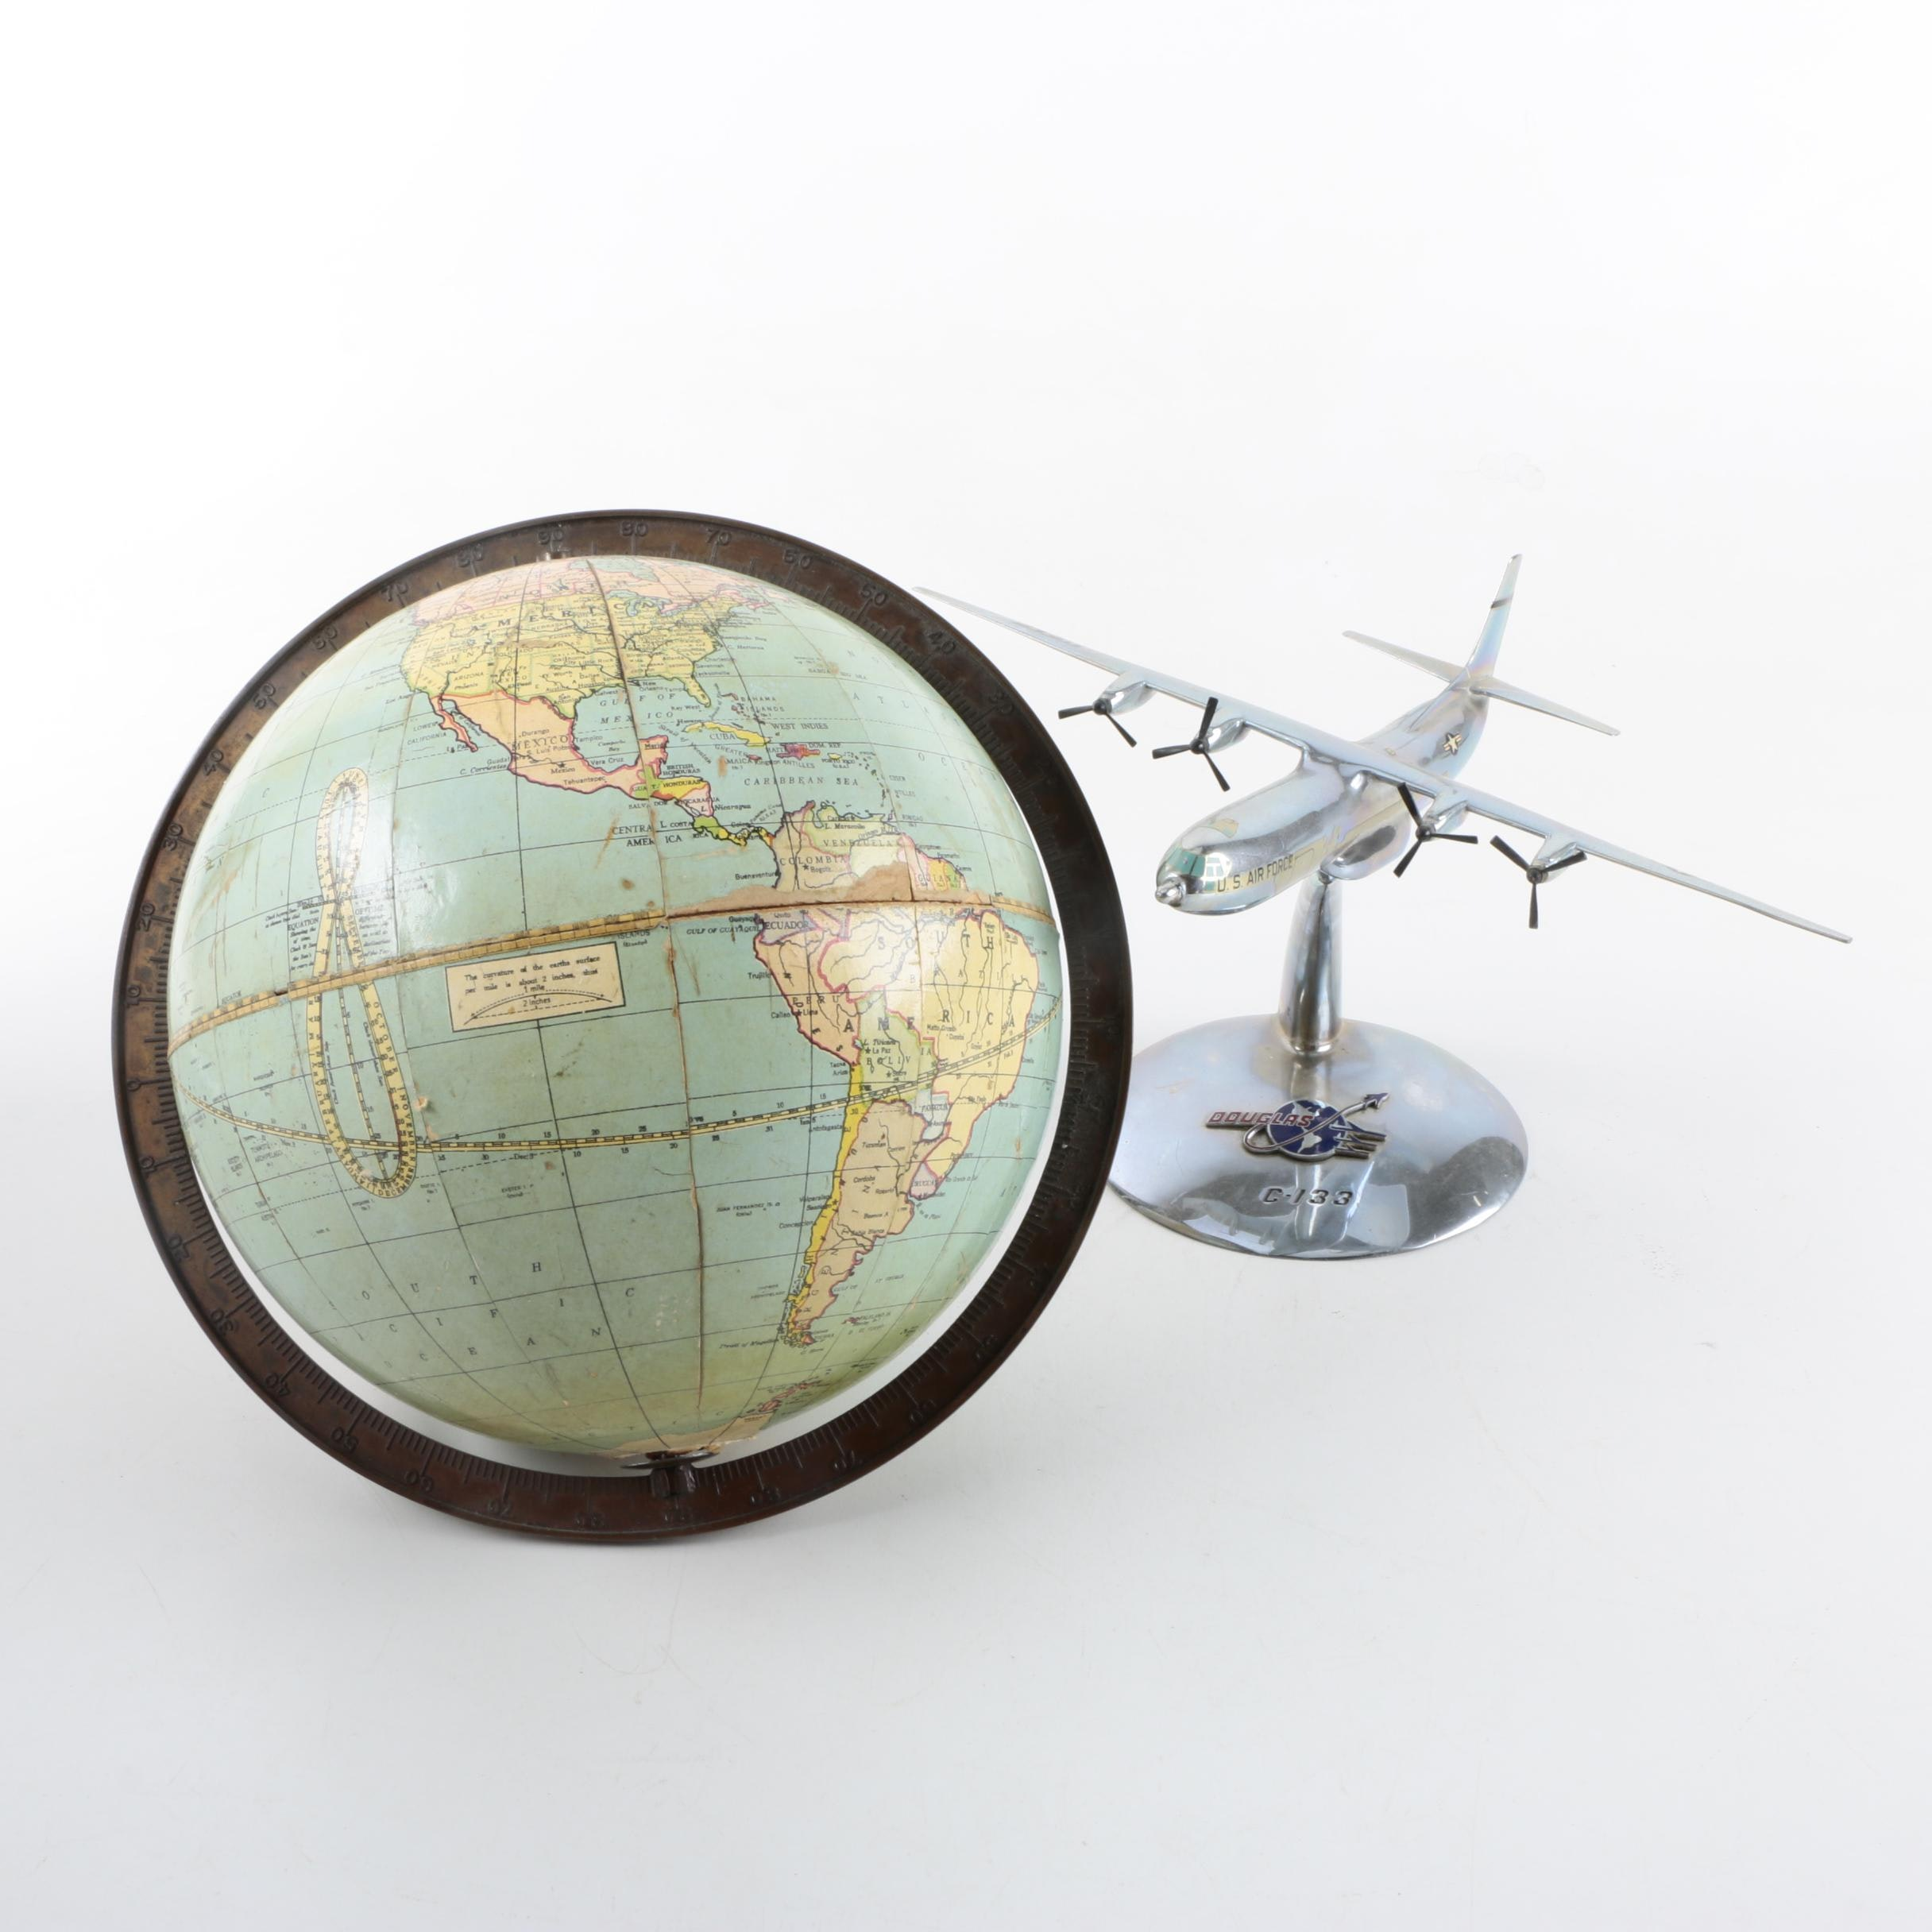 Metal Desk Plane Figure With Baseless World Globe